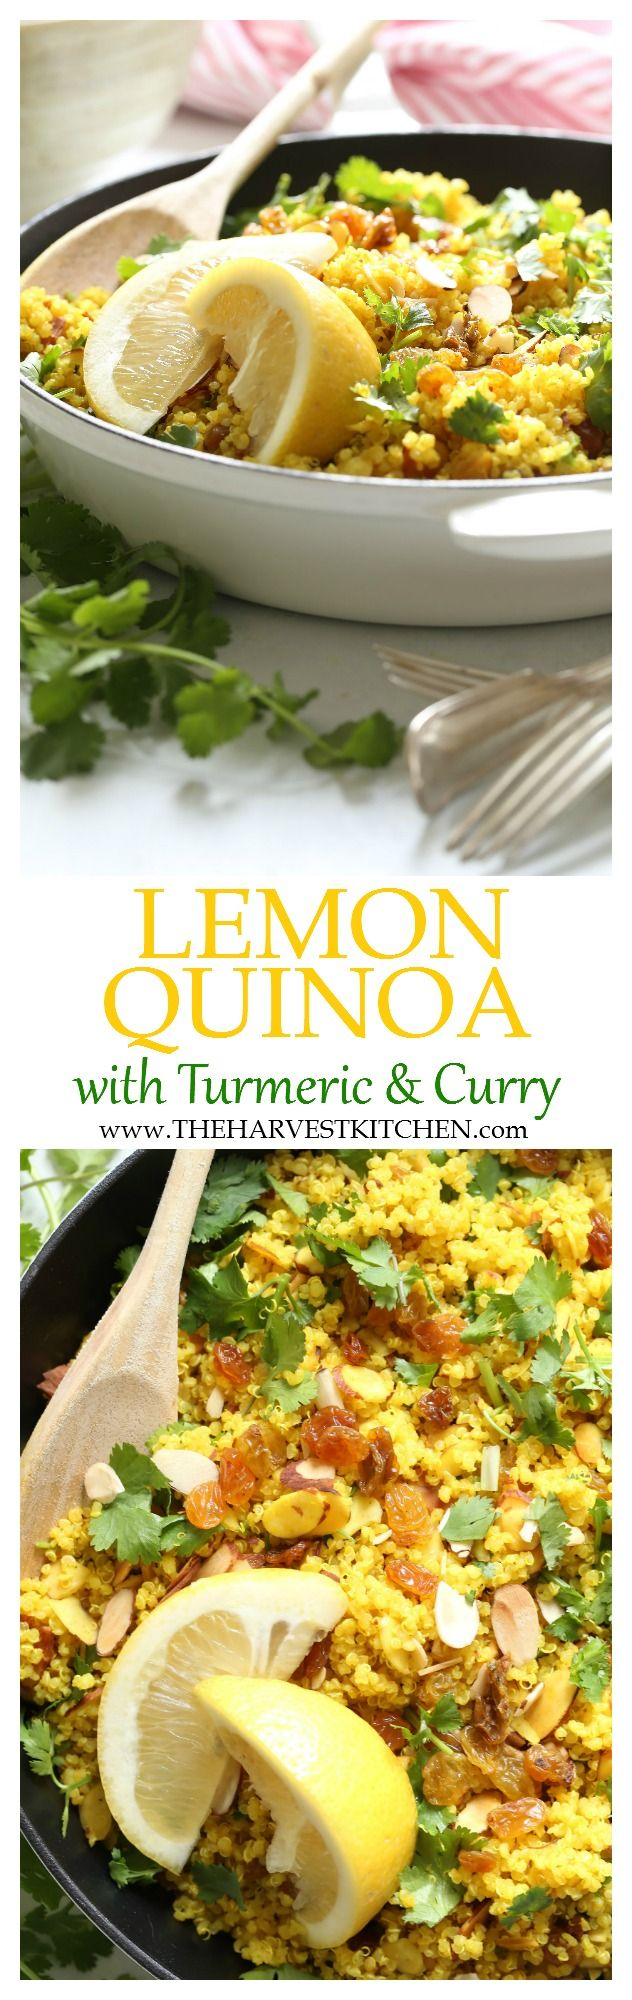 This Lemony Quinoa has a fresh delicious combo of flavors. It's lightly spiced with curry, turmeric and cumin, and it makes a great healthy side dish to grilled fish or chicken. |healthy recipes | | quinoa recipes | | recipes using turmeric |